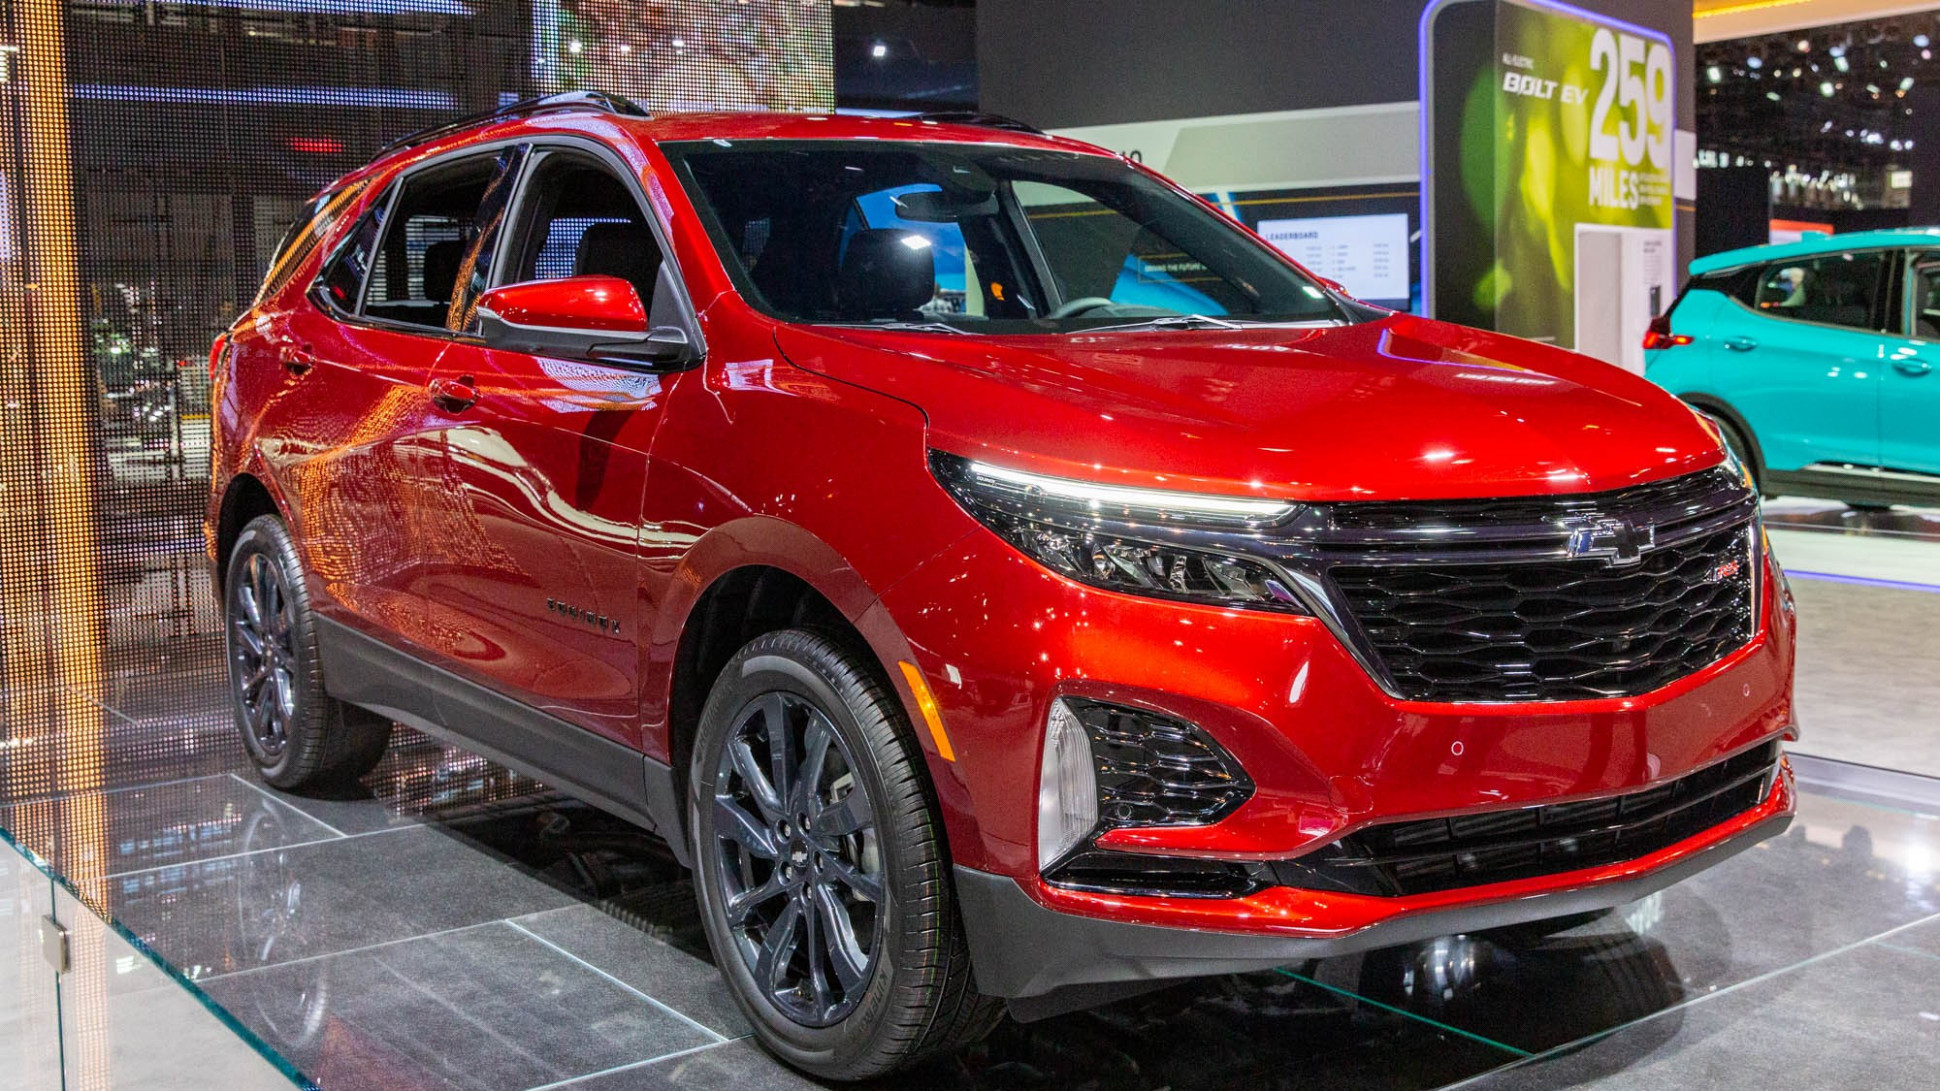 Auto Shows – News from Auto Shows around the World - Motor Authority - chevrolet detroit auto show 2020